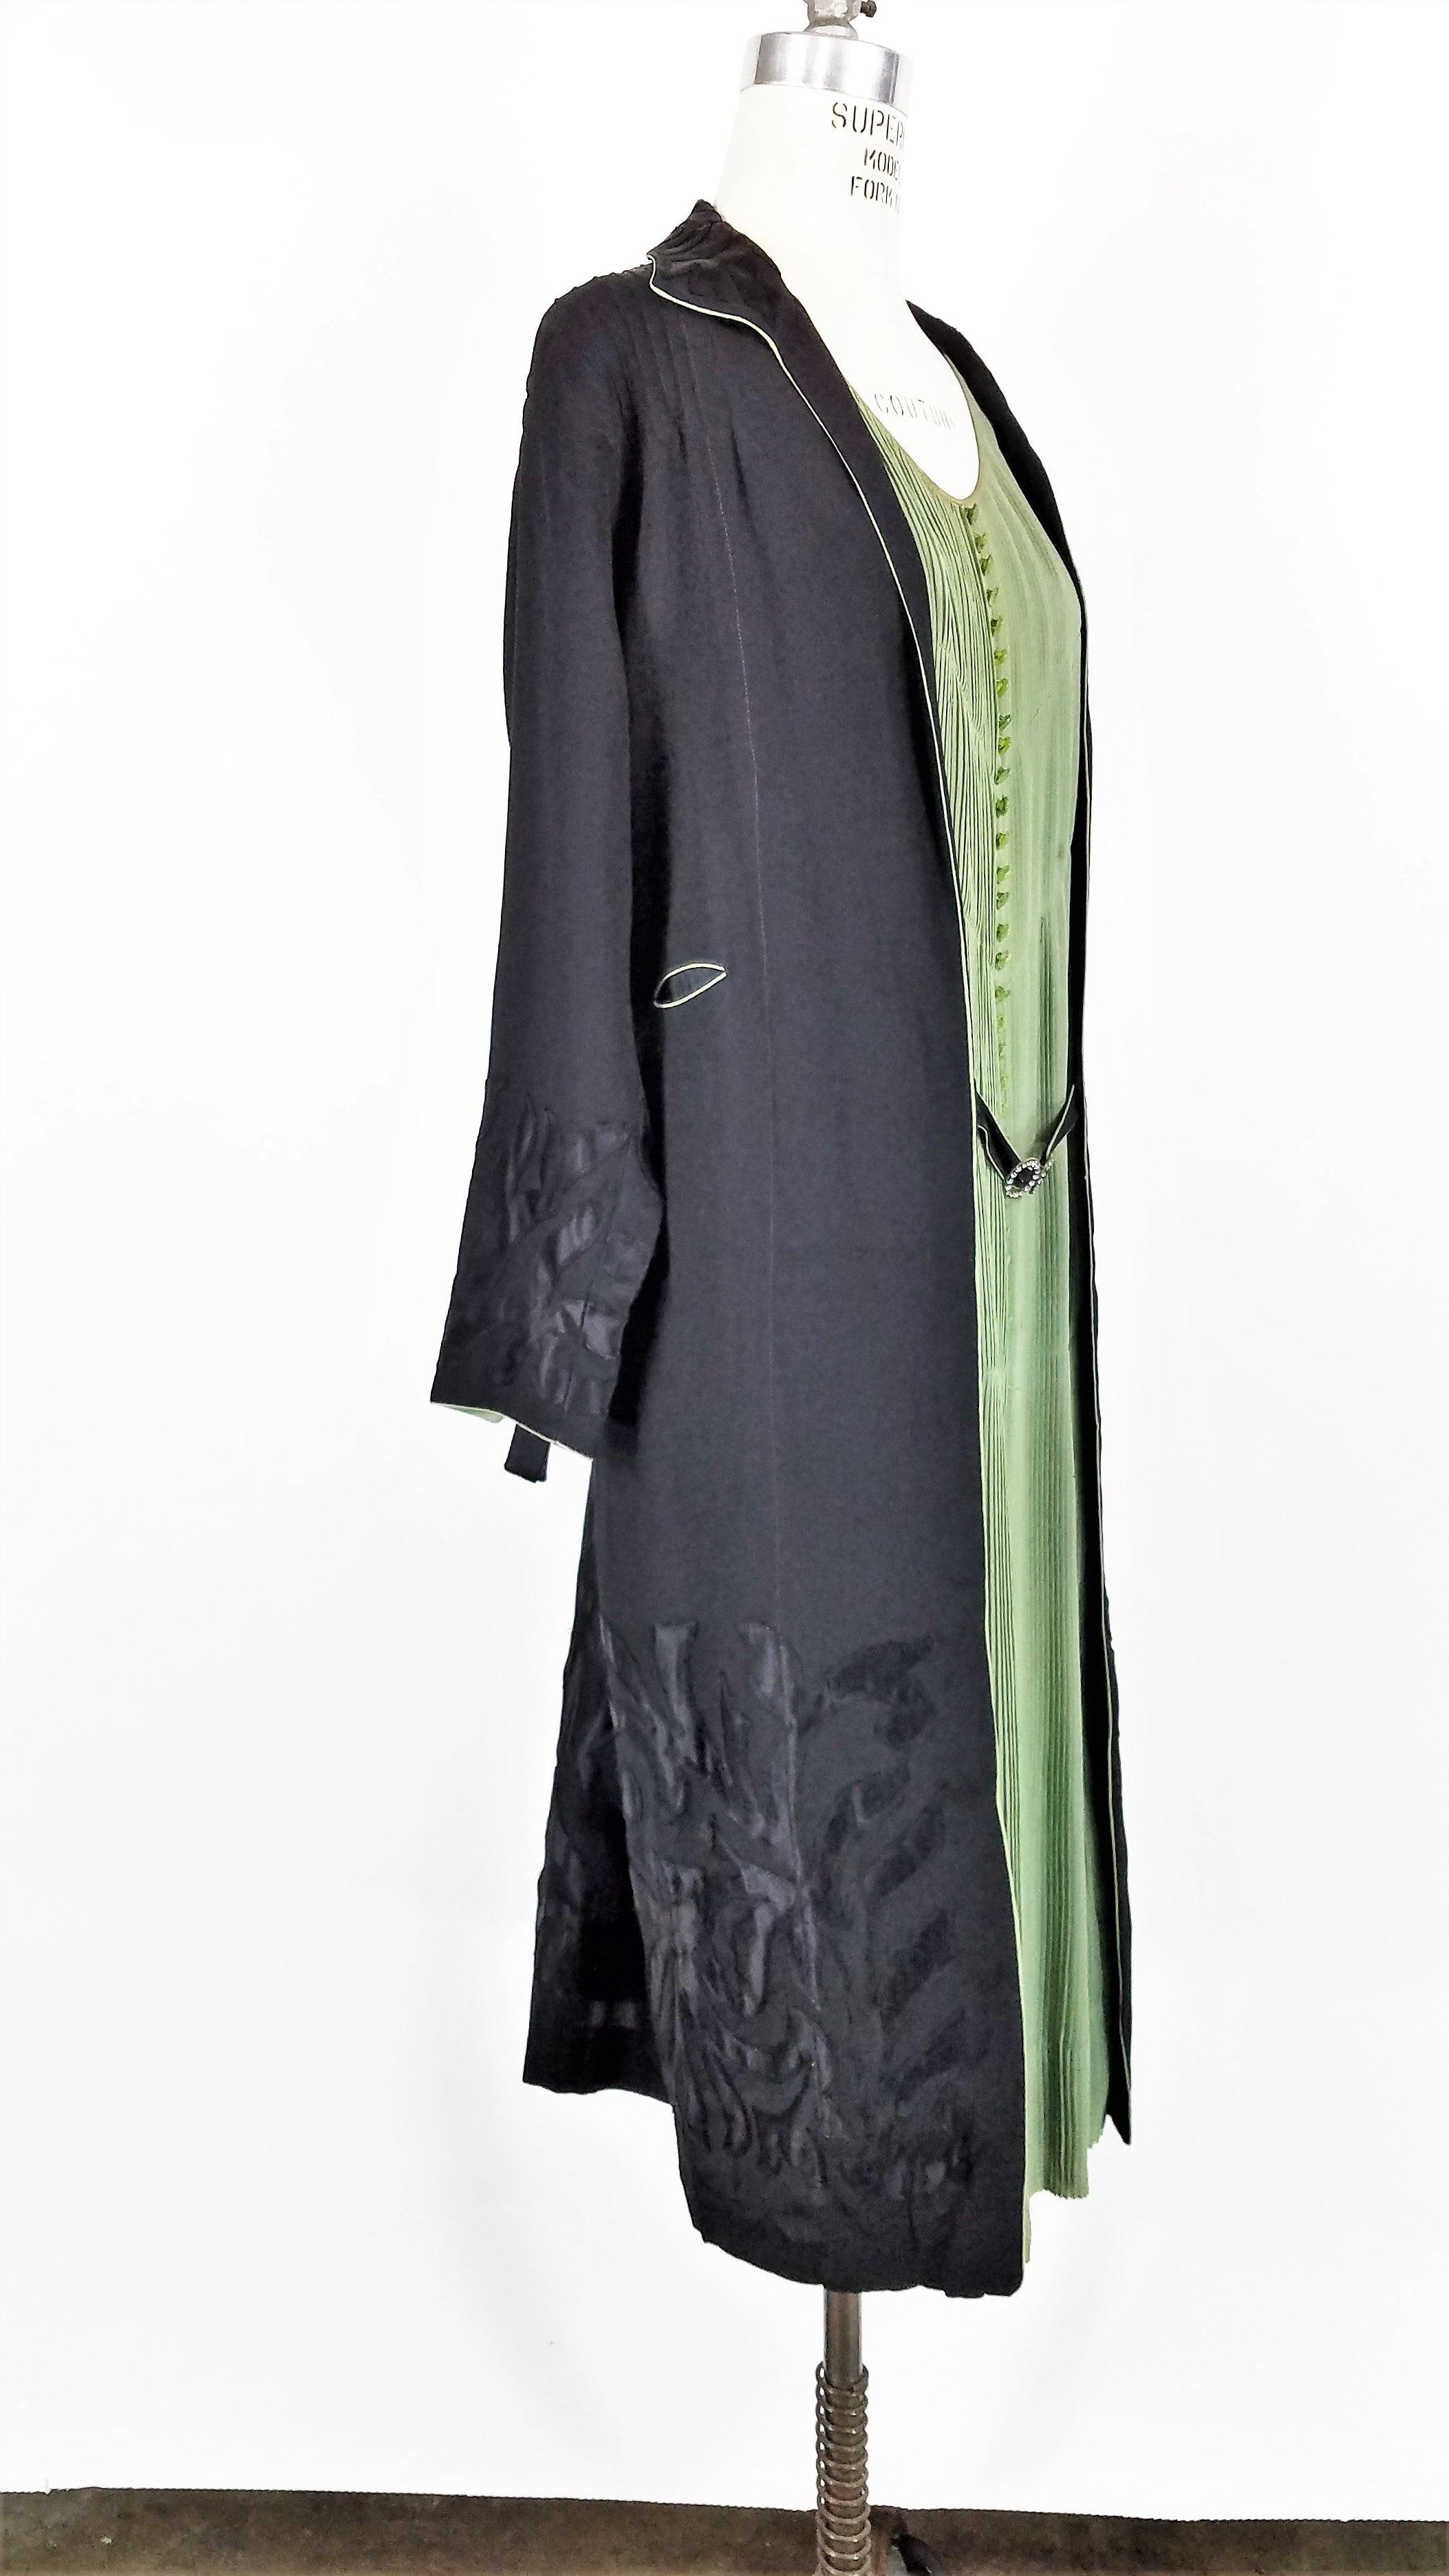 Vintage 1920s Black And Green Dress